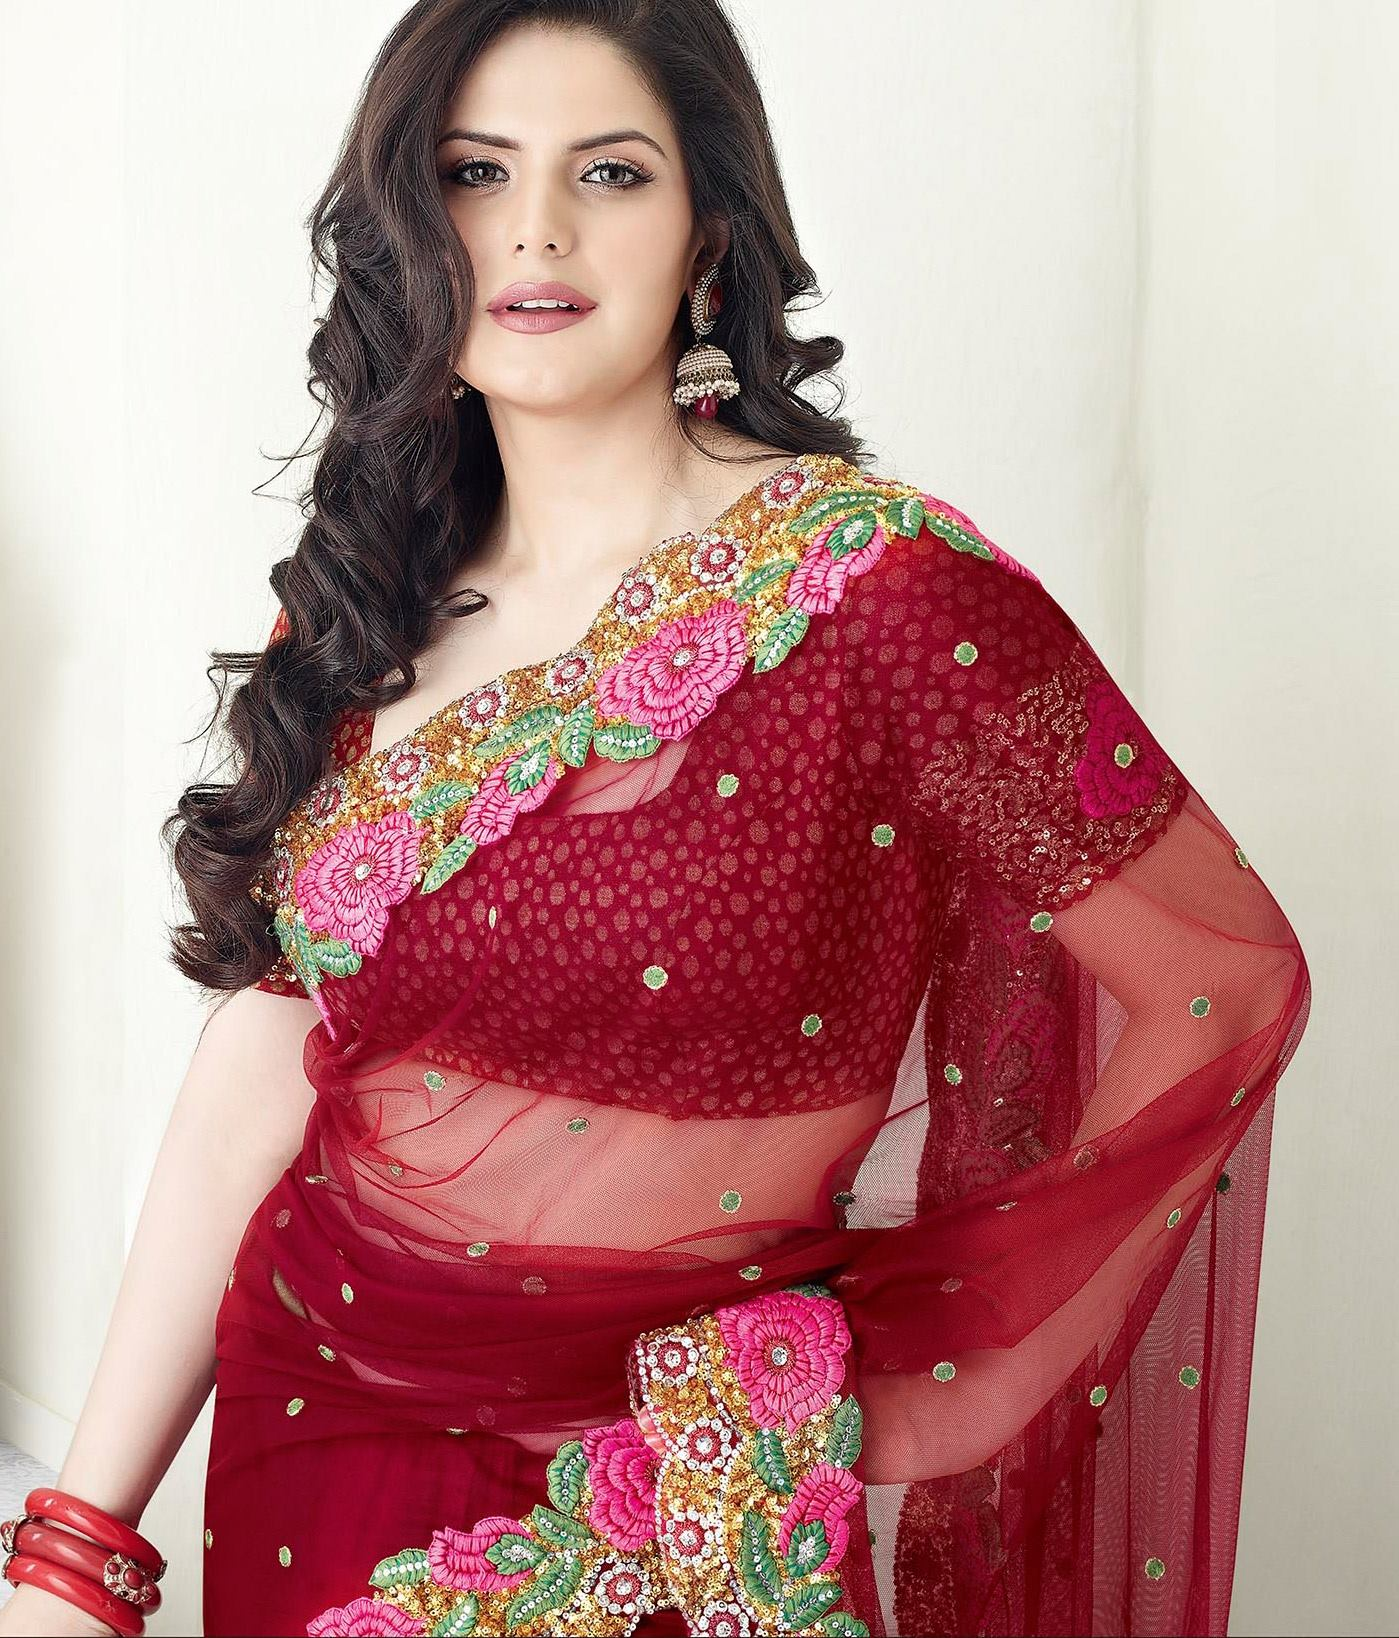 Punjabi actress Zarine khan wallpaper in saree